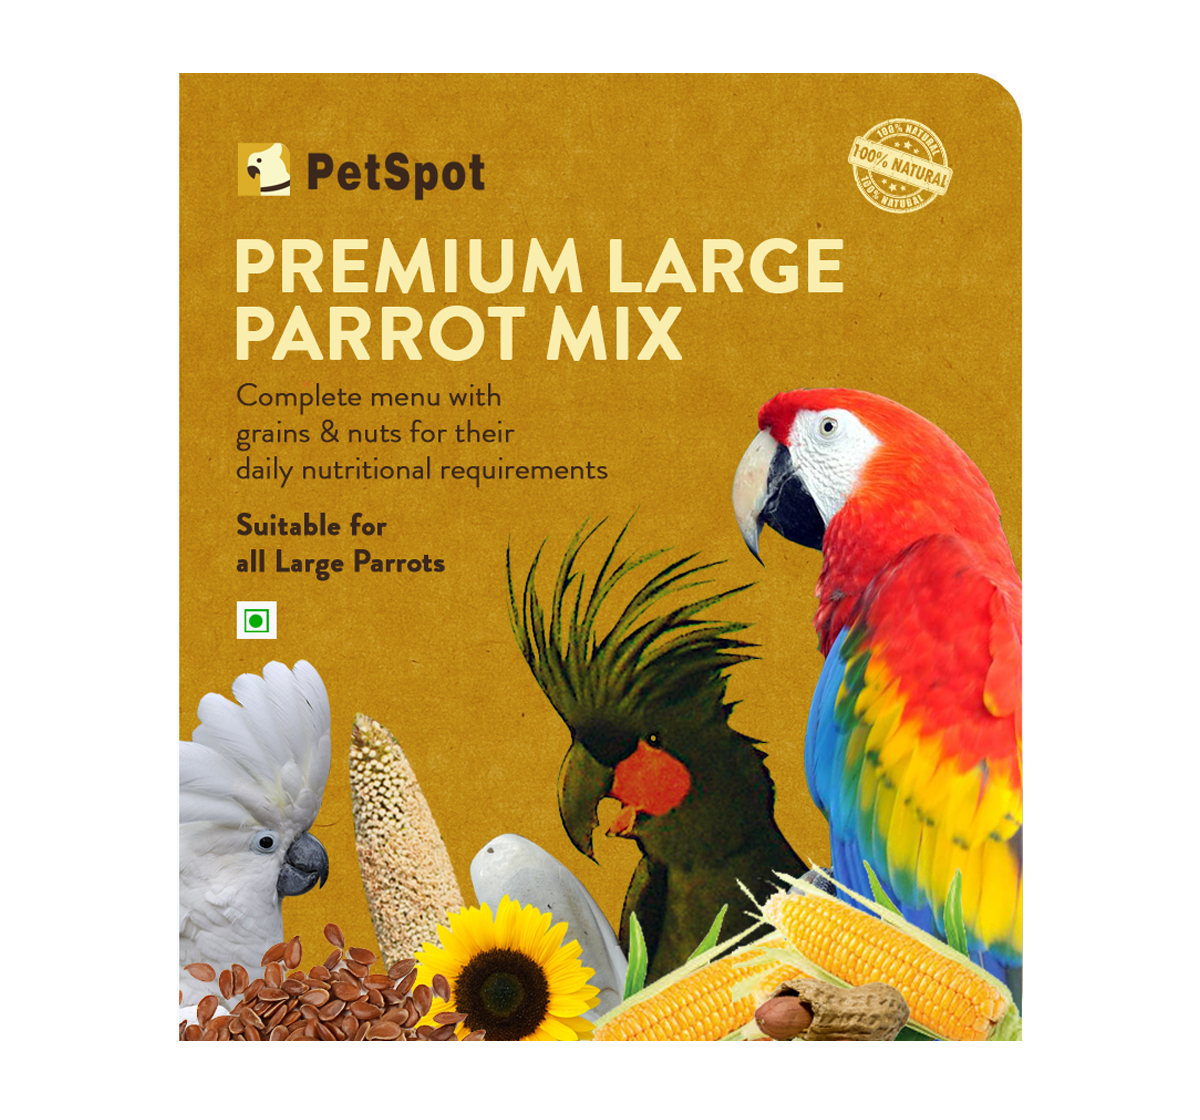 PetSpot Premium Large Parrot Mix - 800 gm